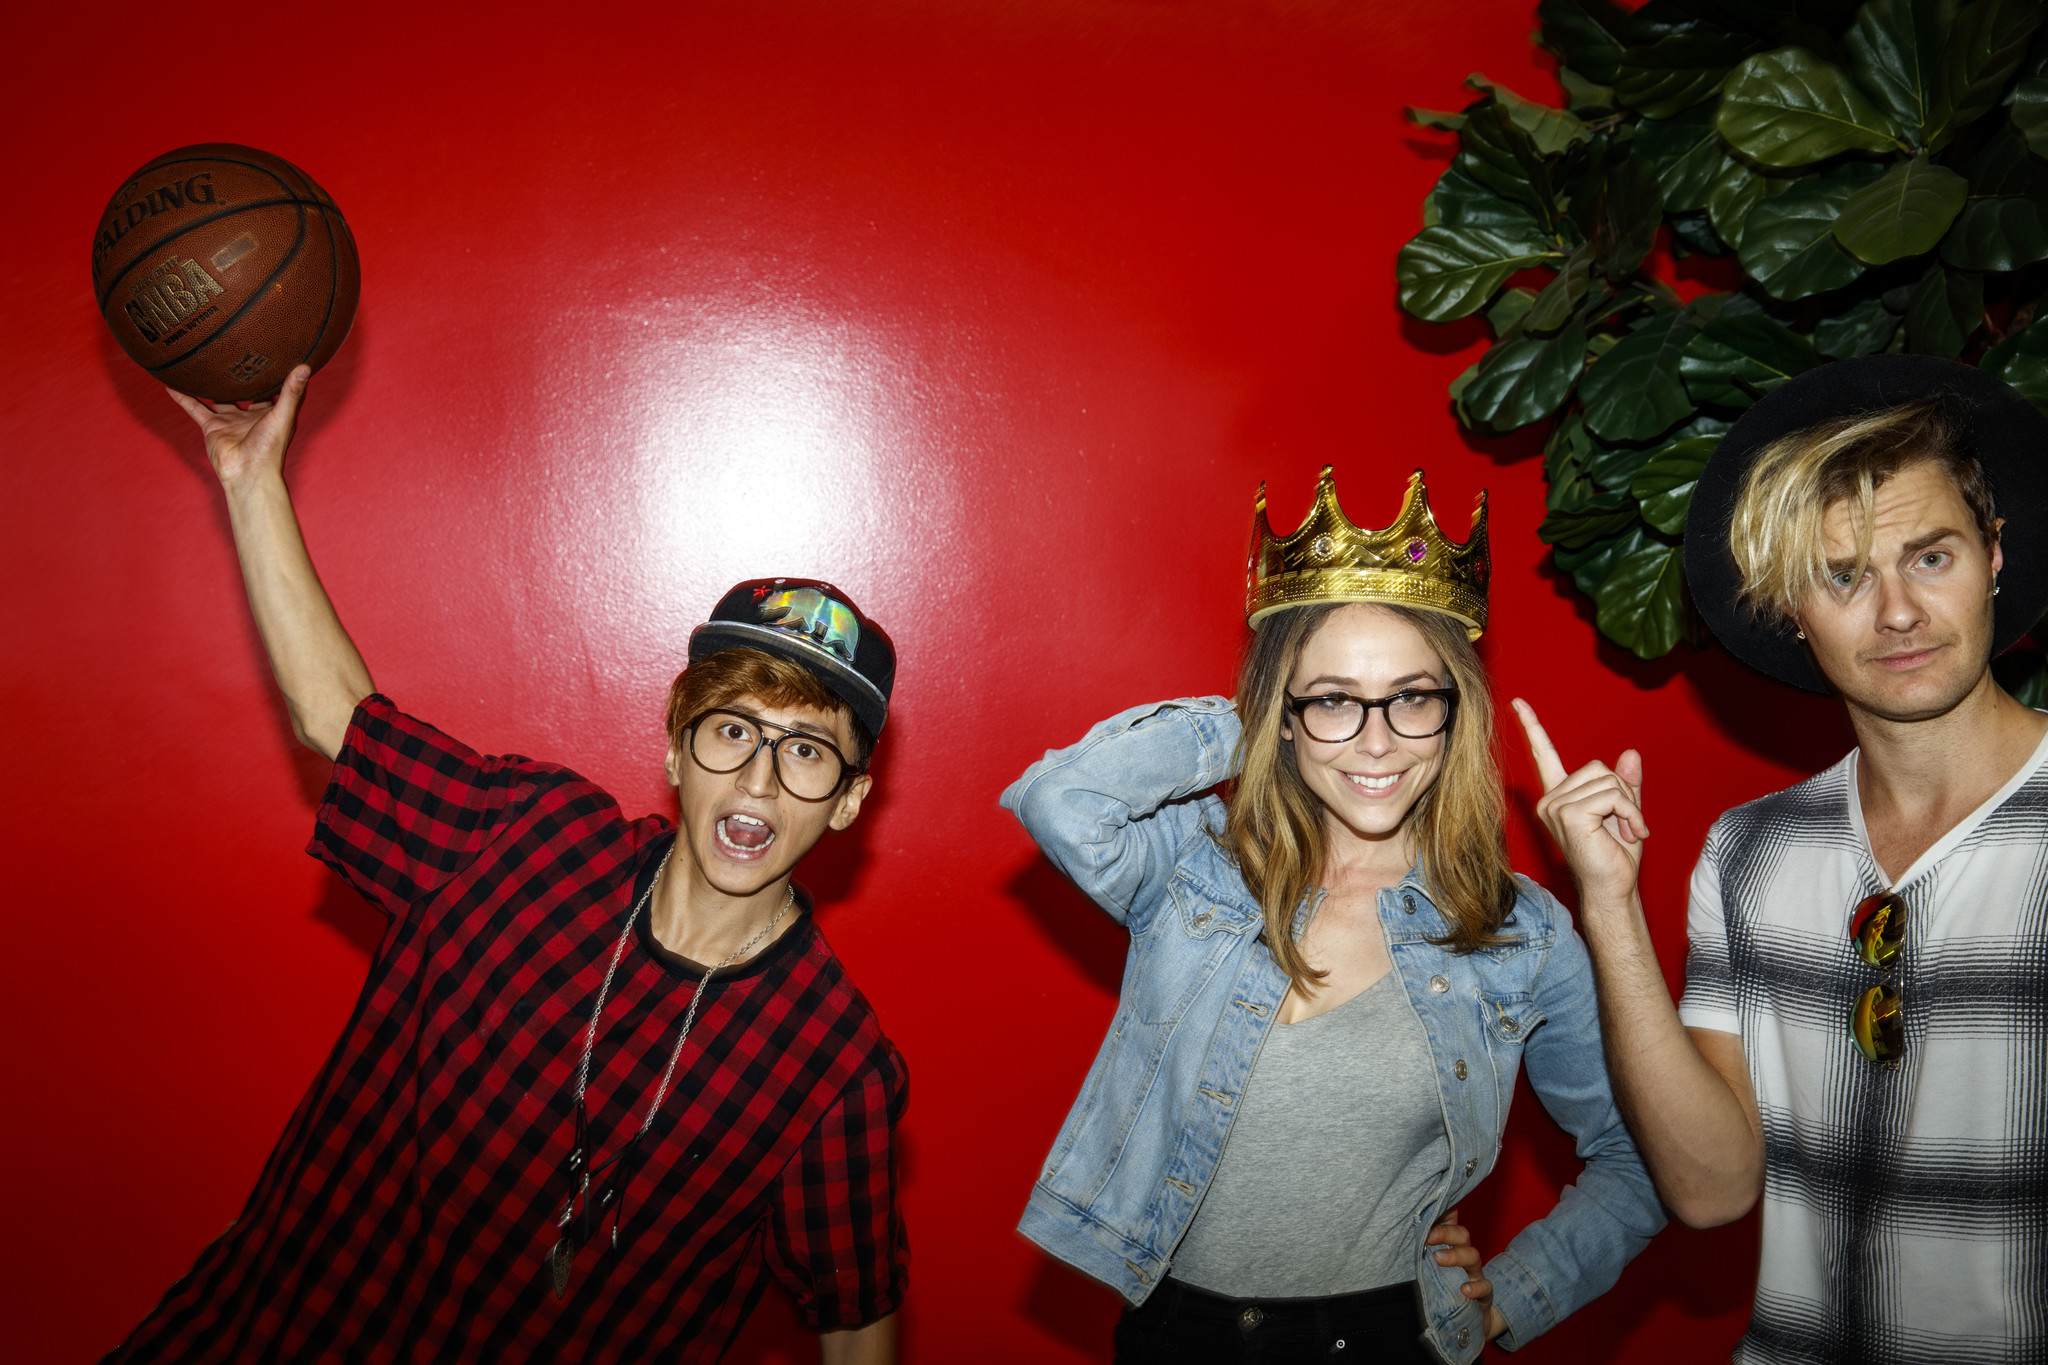 George Padilla, Shira Lazar and Bart Baker, from left, all regular content creators and avid users of the social app Musical.ly, pose for portraits during a visit to company's Santa Monica office.